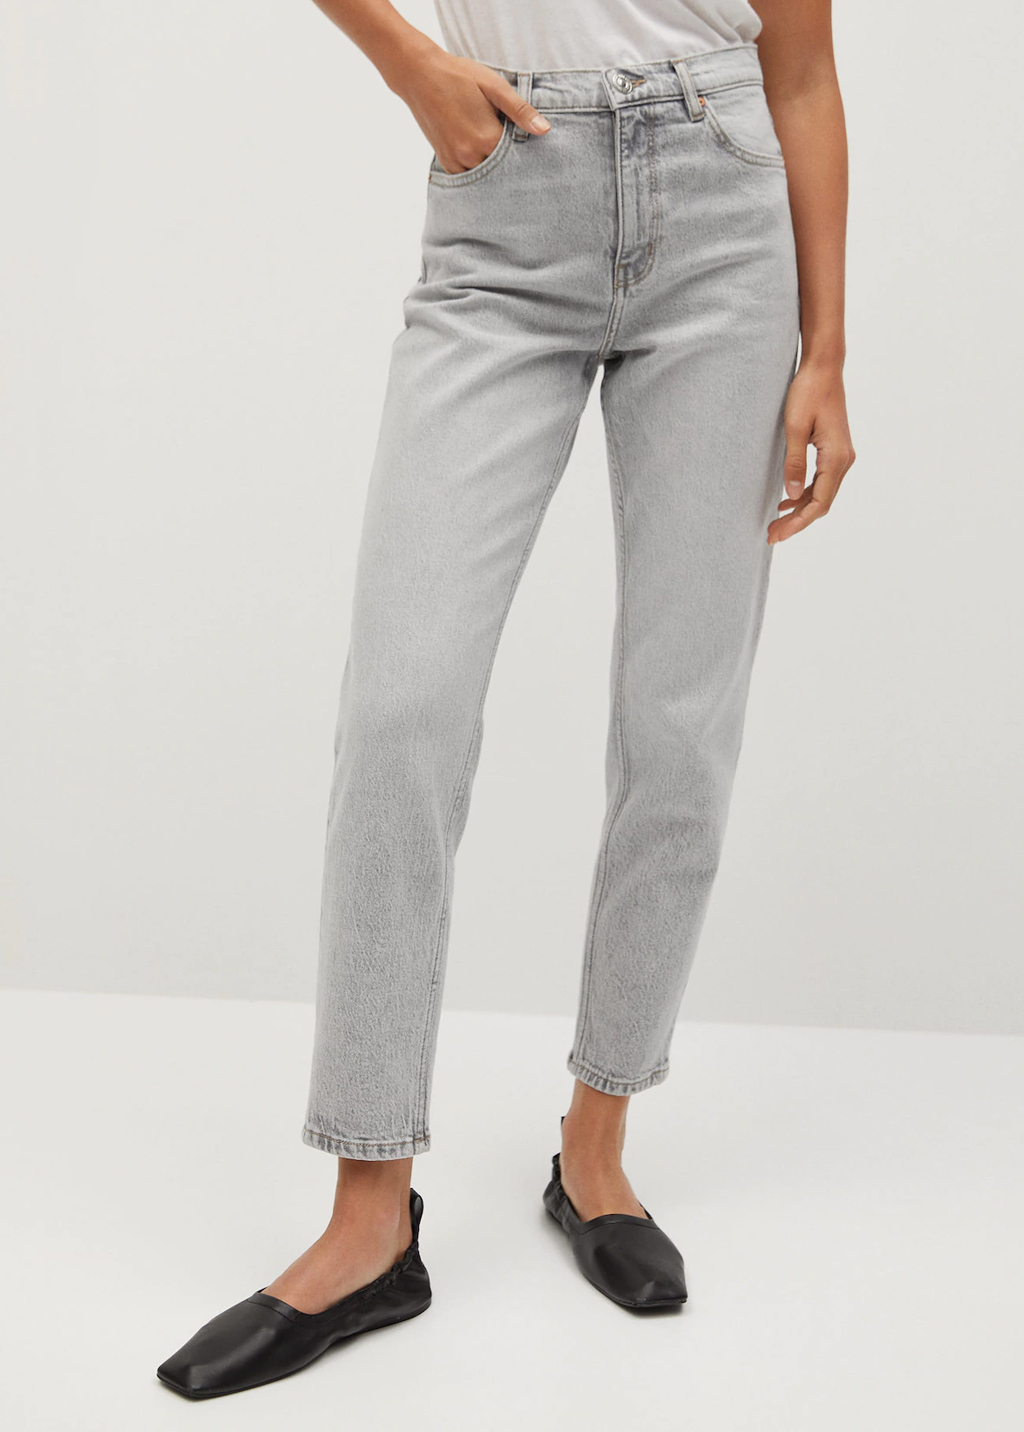 grey mom jeans